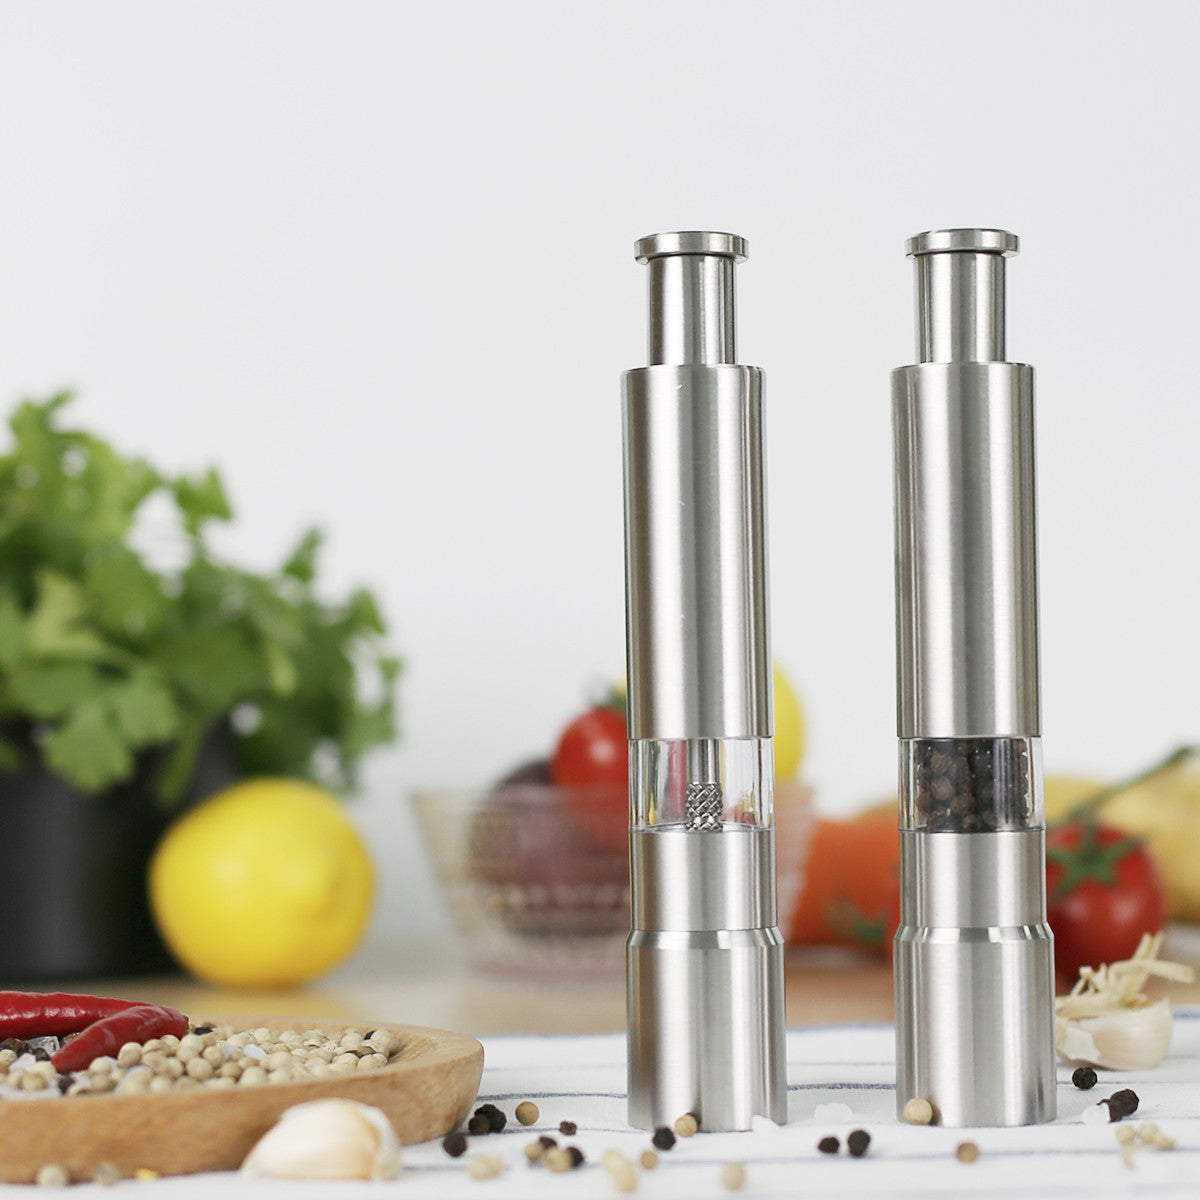 Pepper Grinder, Salt Mill, Stainless Steel Manual Press Sleek Pepper Grinder